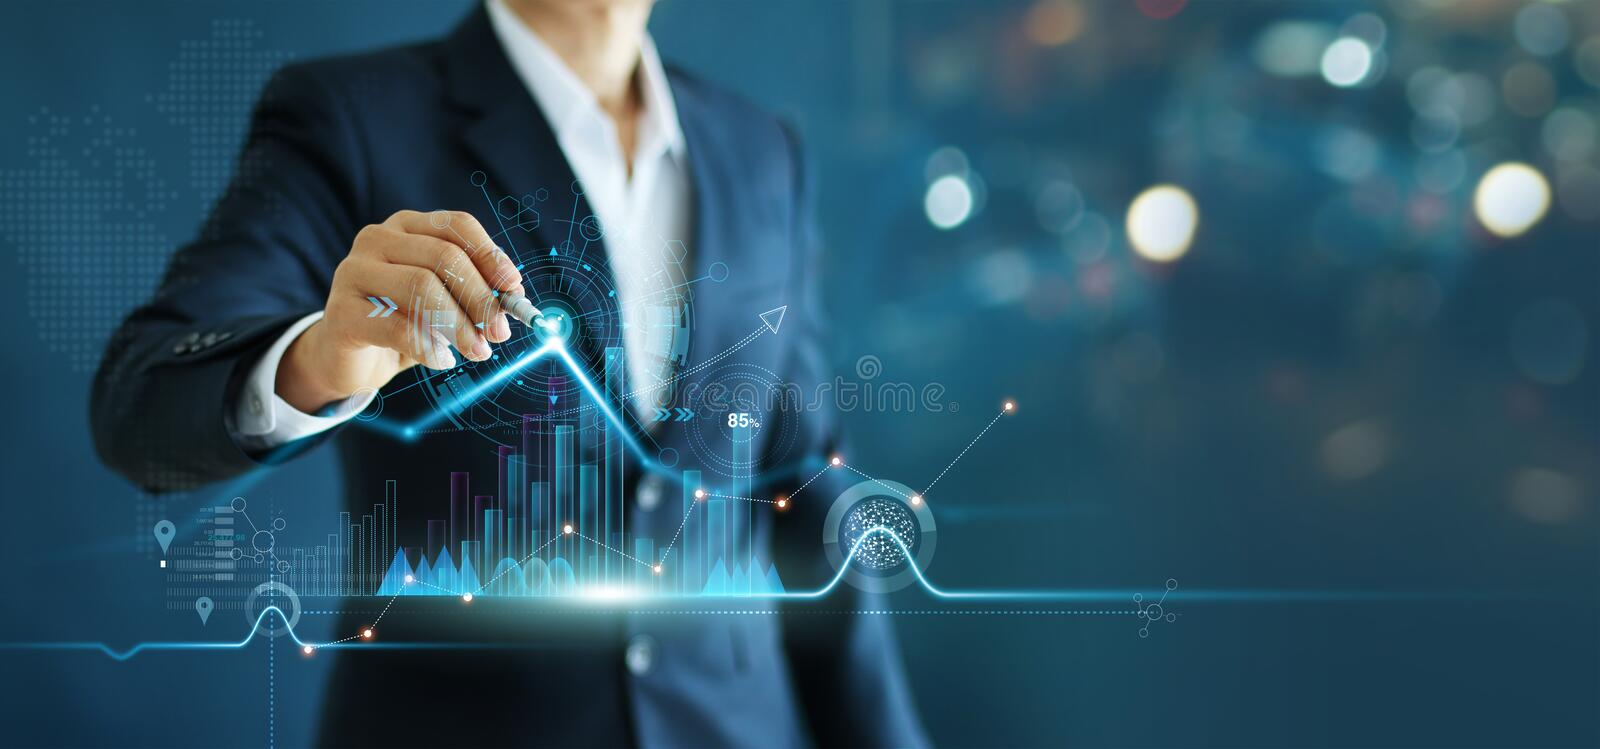 Businessman drawing growth graph chart sales and data economic on global structure networking connection royalty free stock images